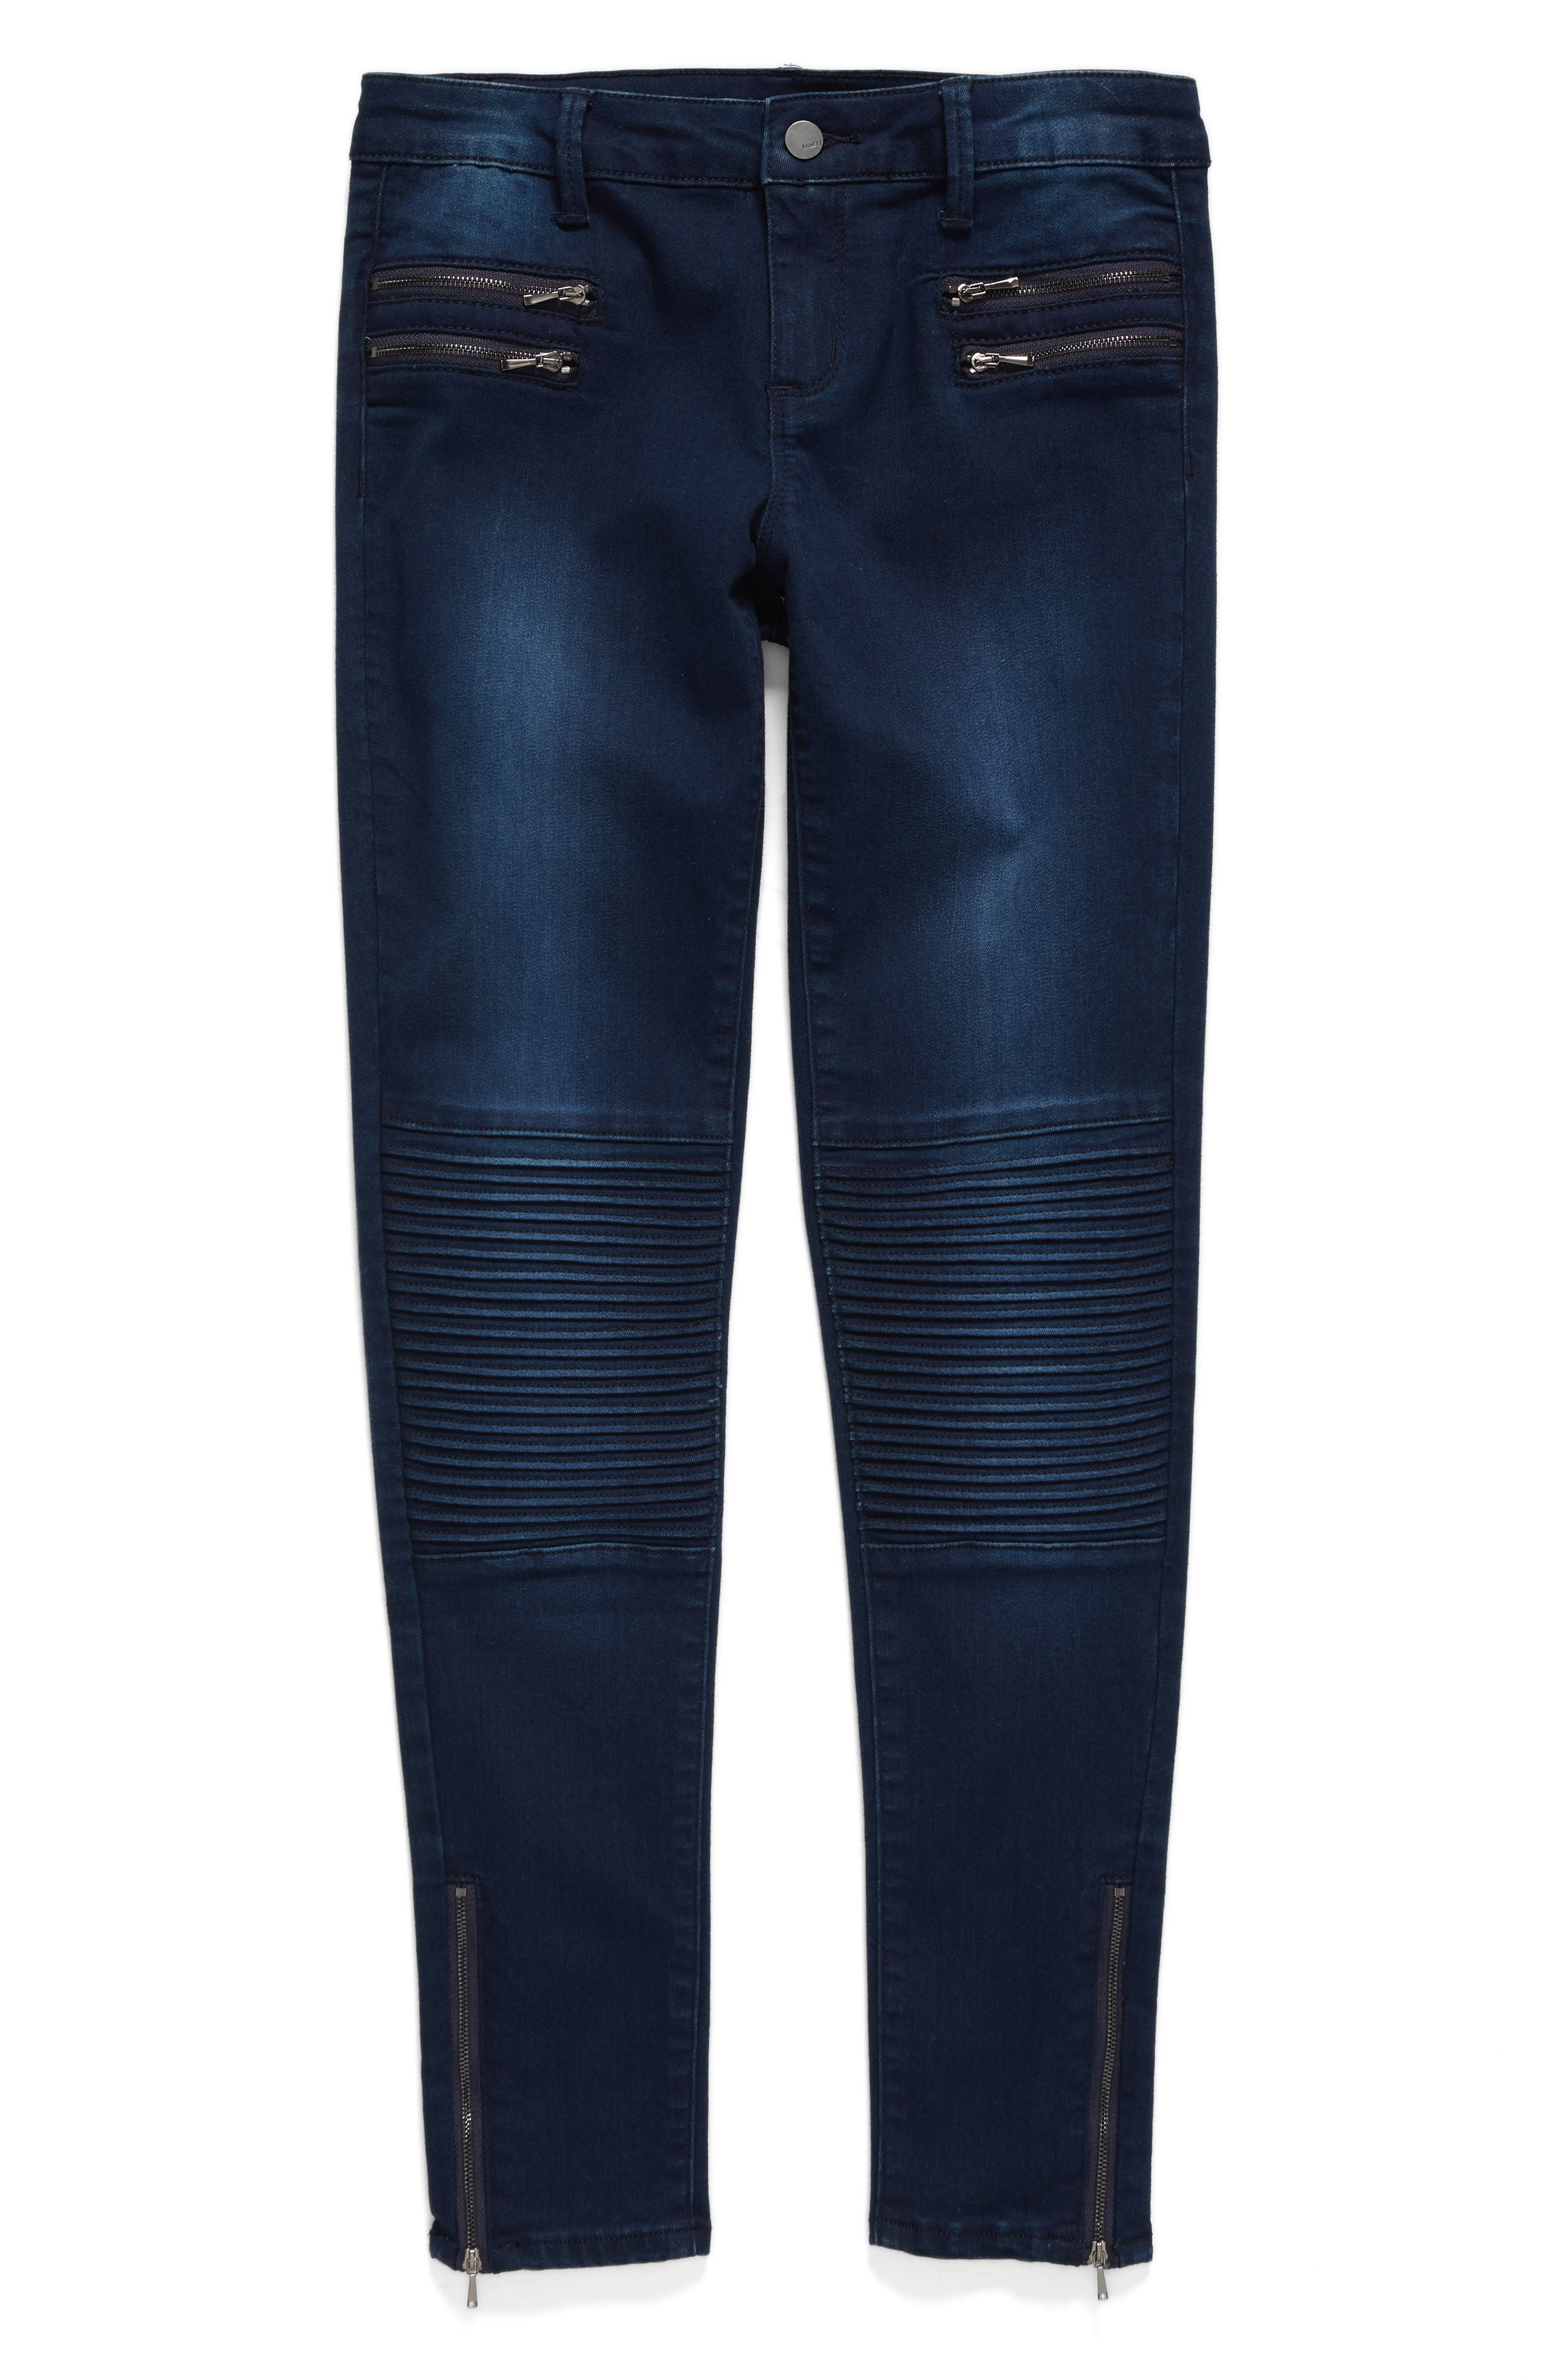 Tractr Moto Skinny Jeans (Big Girls)